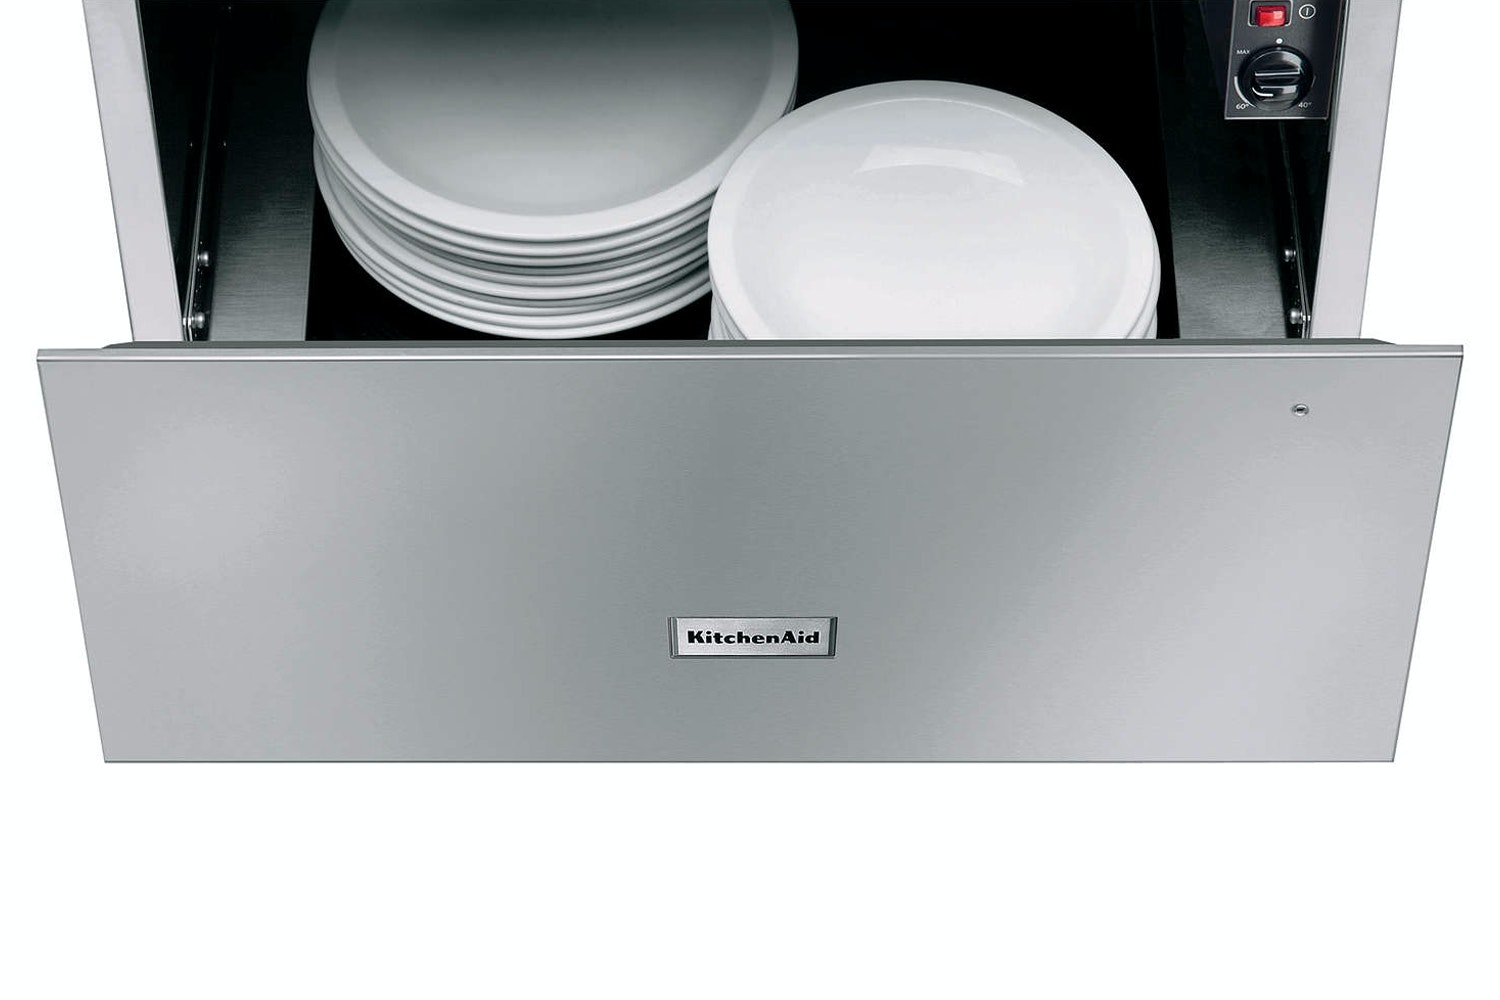 KitchenAid Warming Drawer | Stainless Steel